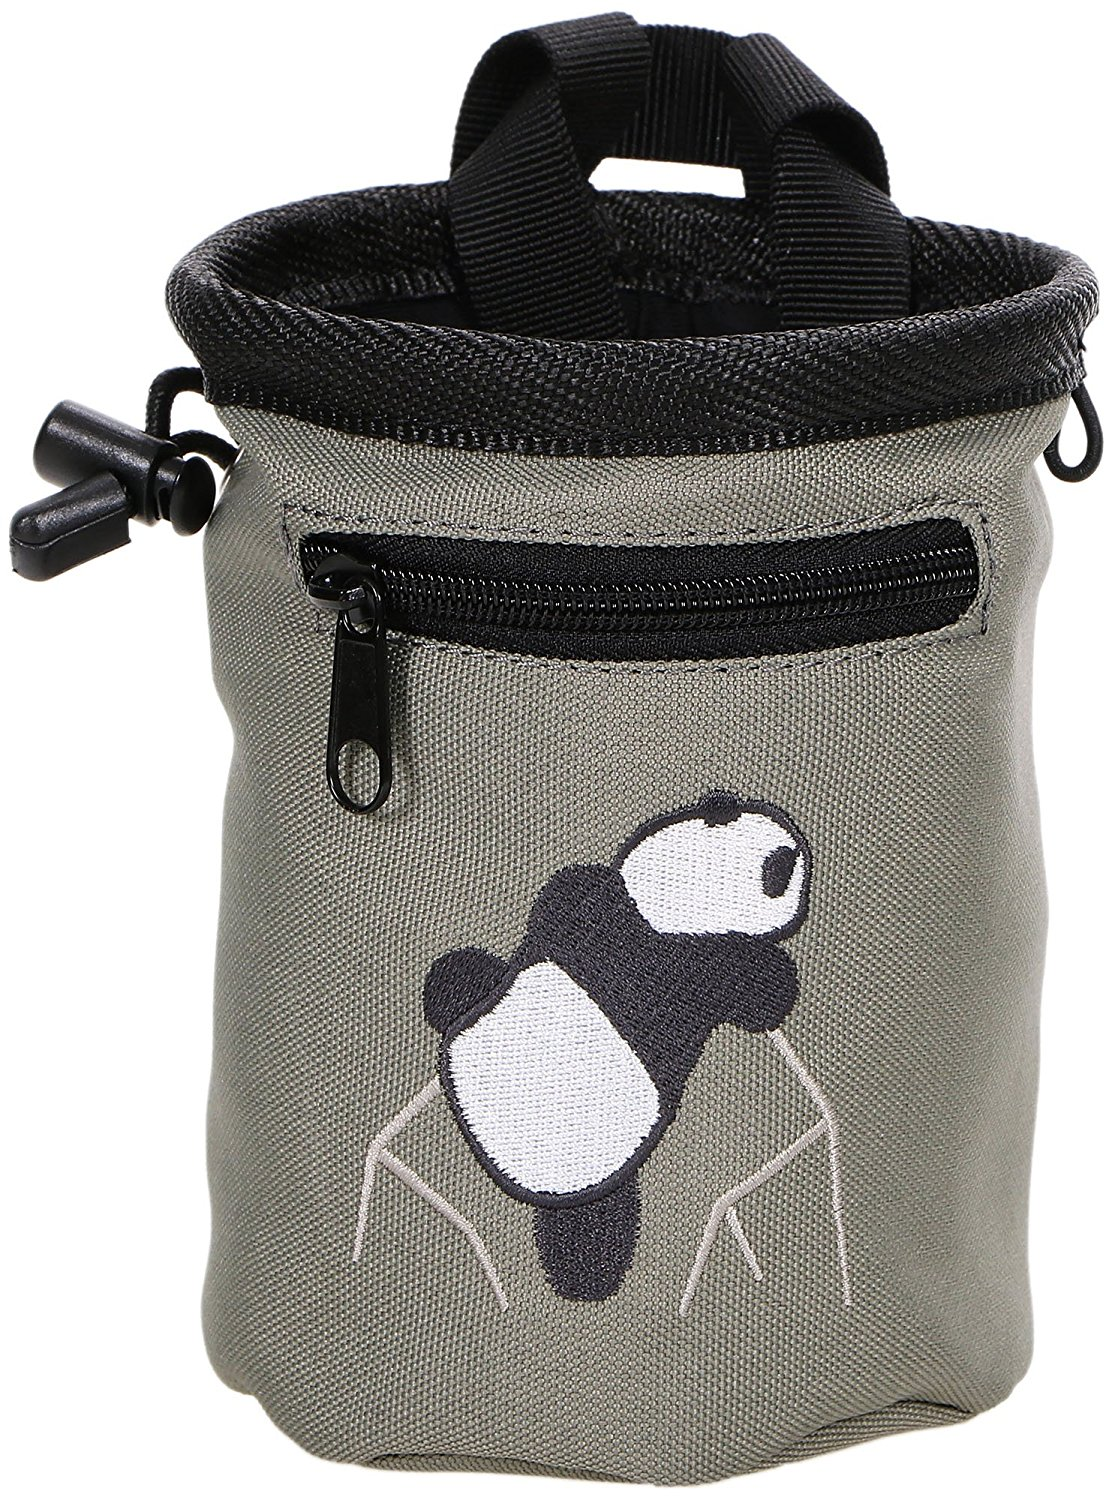 AMC Rock Climbing Panda Bear Design Chalk Bag